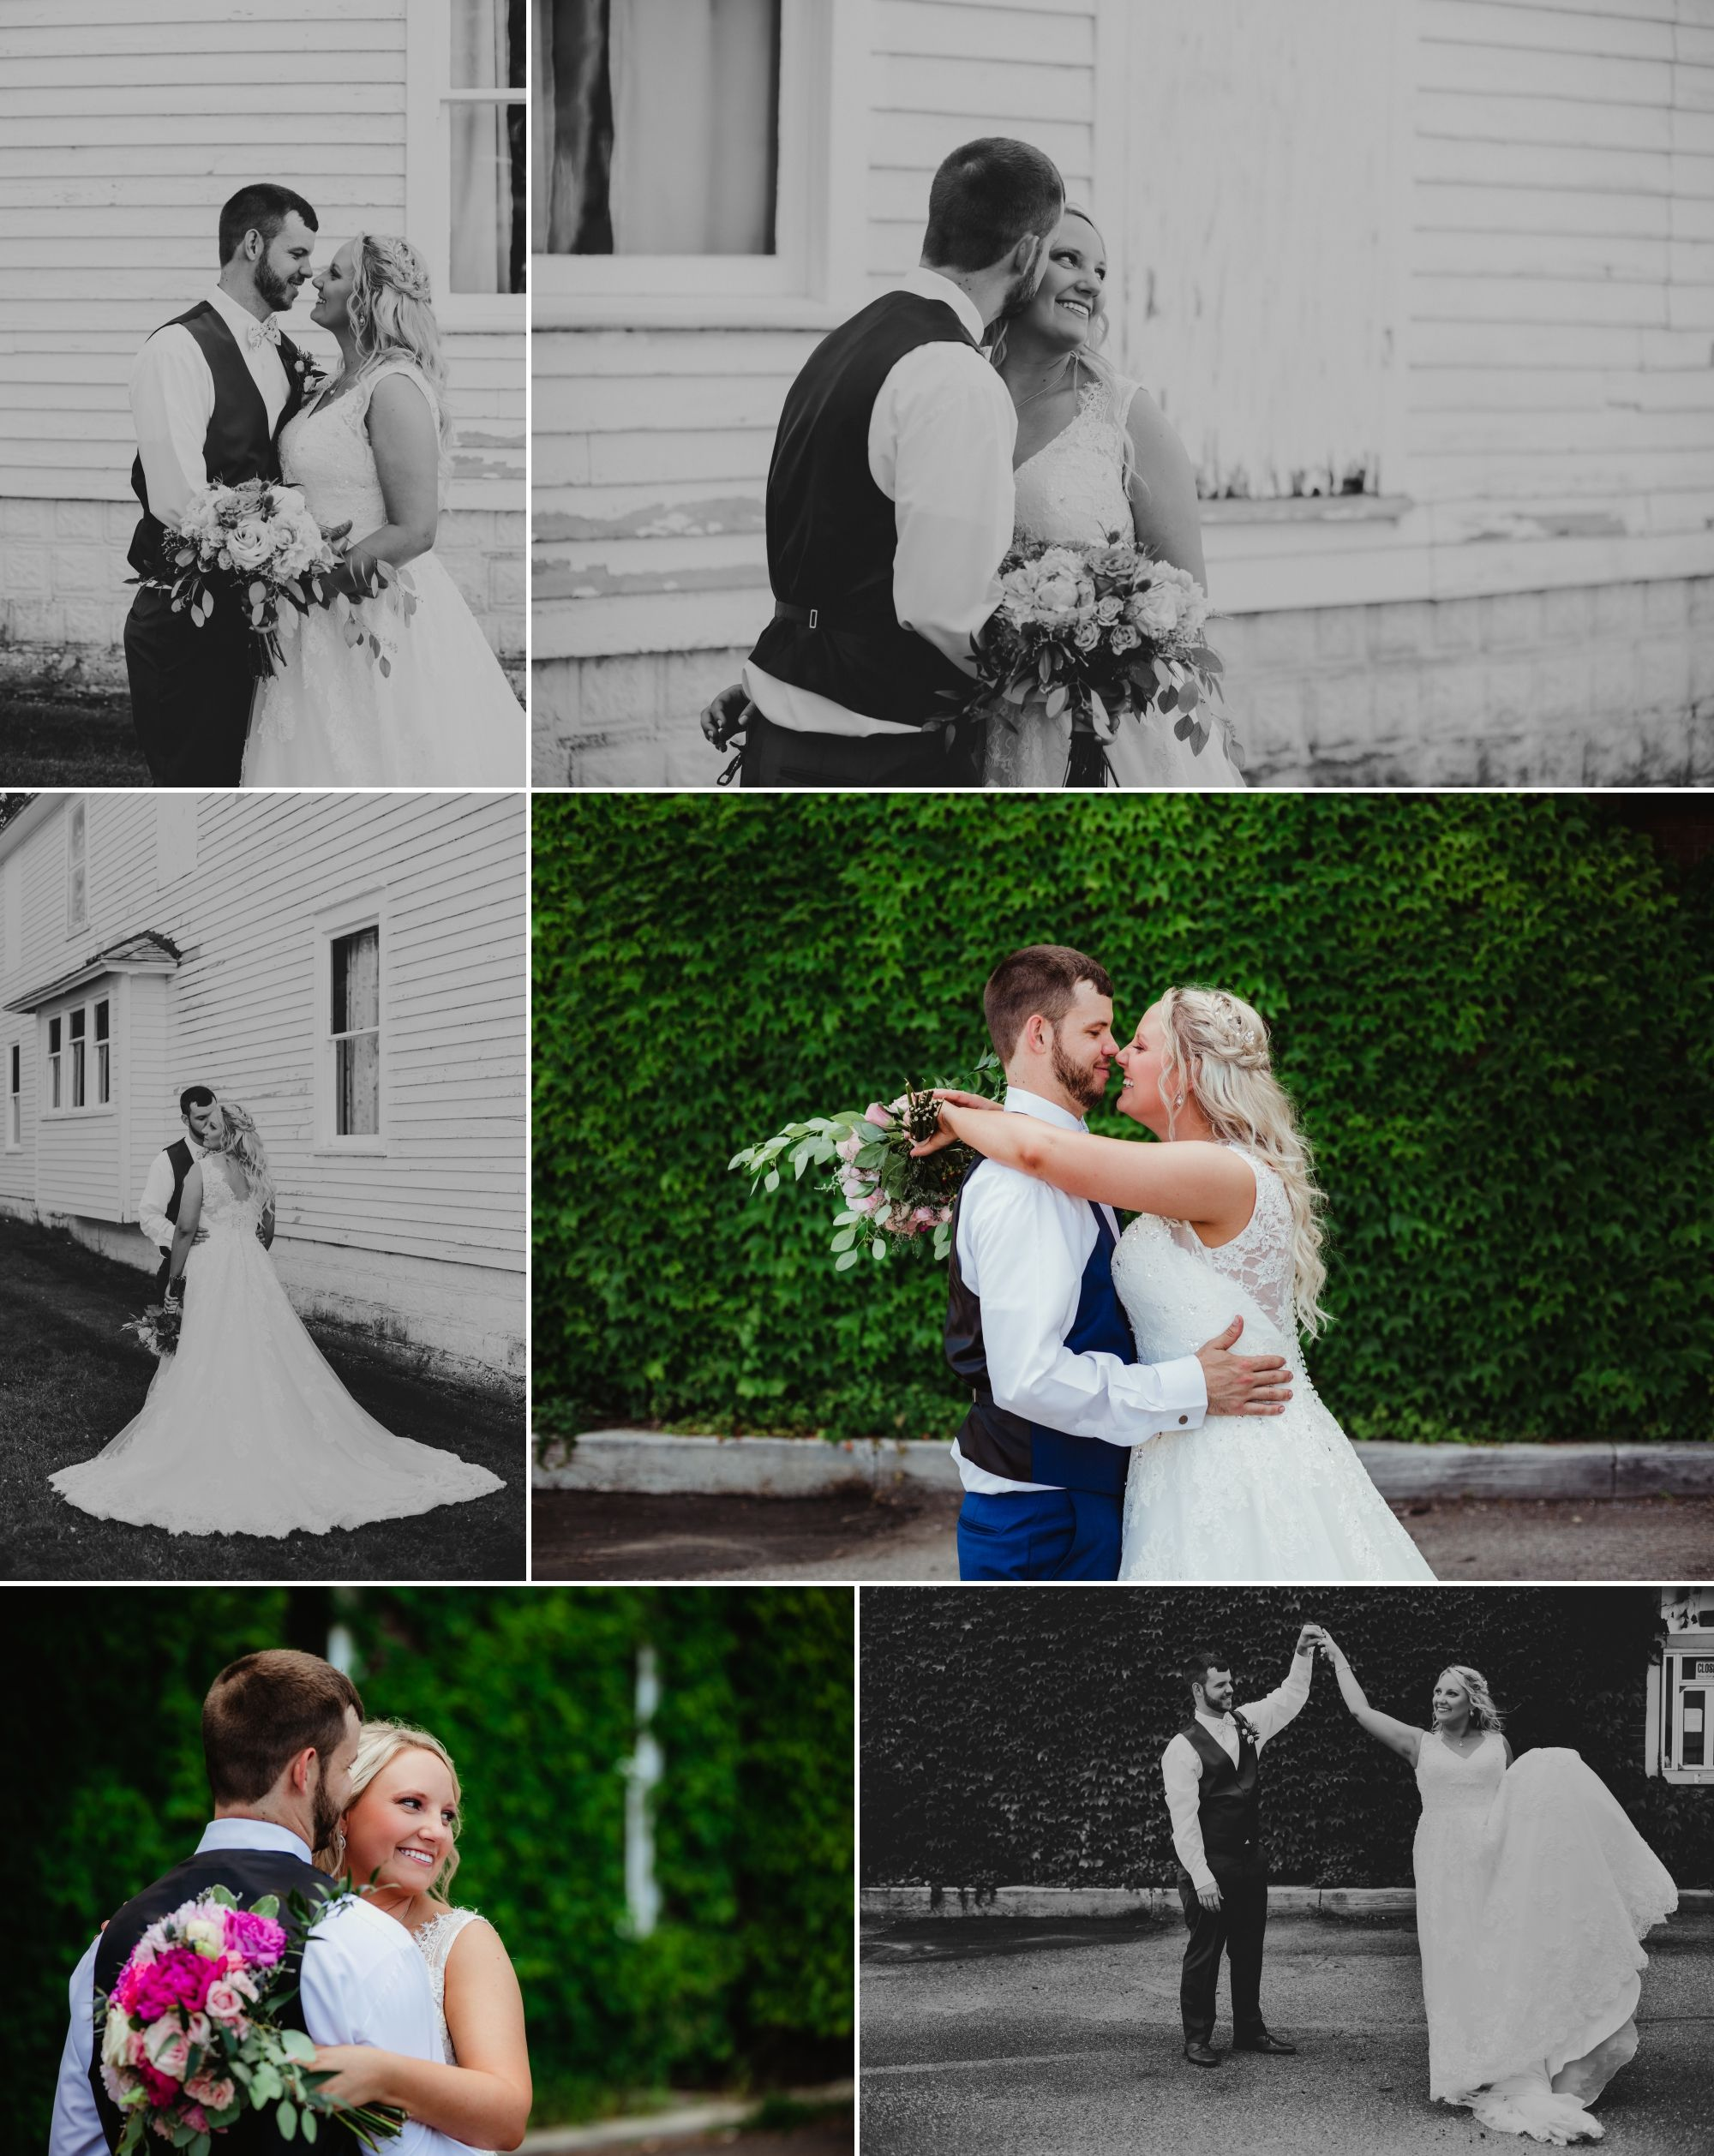 Collage of the bride and groom in front of white building and ivy. They smile, embrace, and dance.